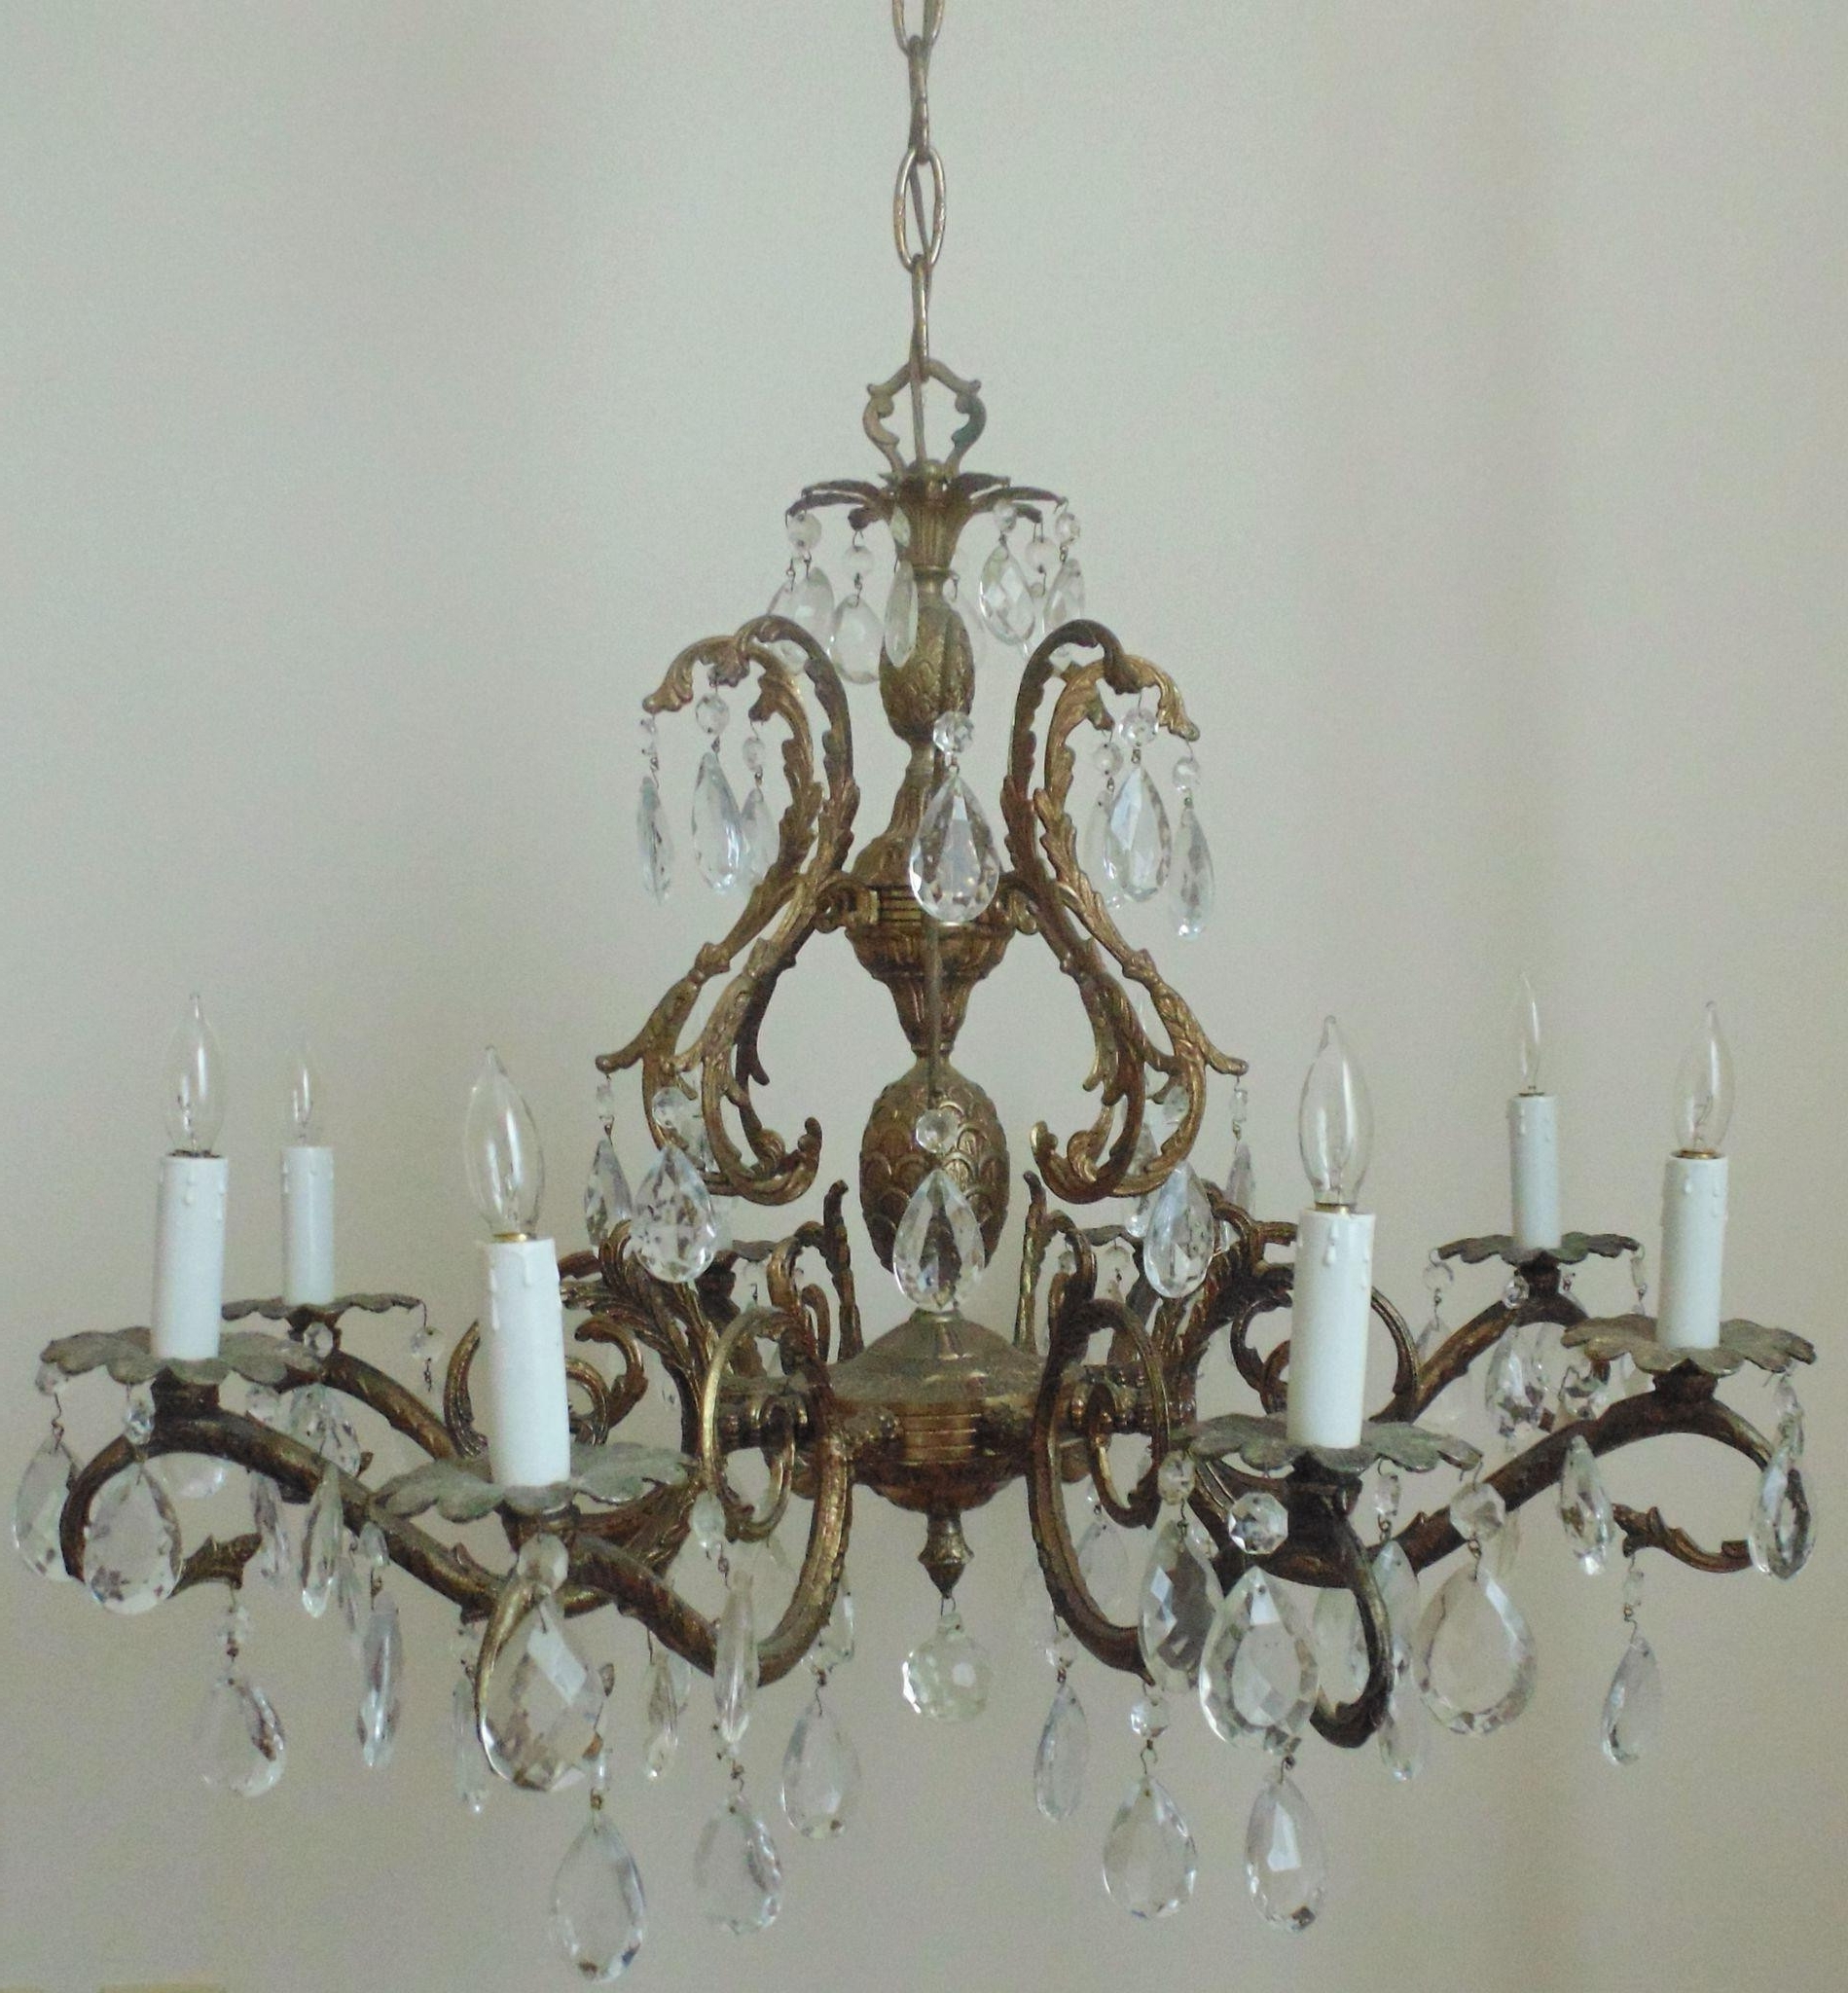 Chandeliers : Vintage Chandelier Elegant Vintage Chandelier Hire With Regard To Most Current Vintage Chandeliers (View 1 of 20)